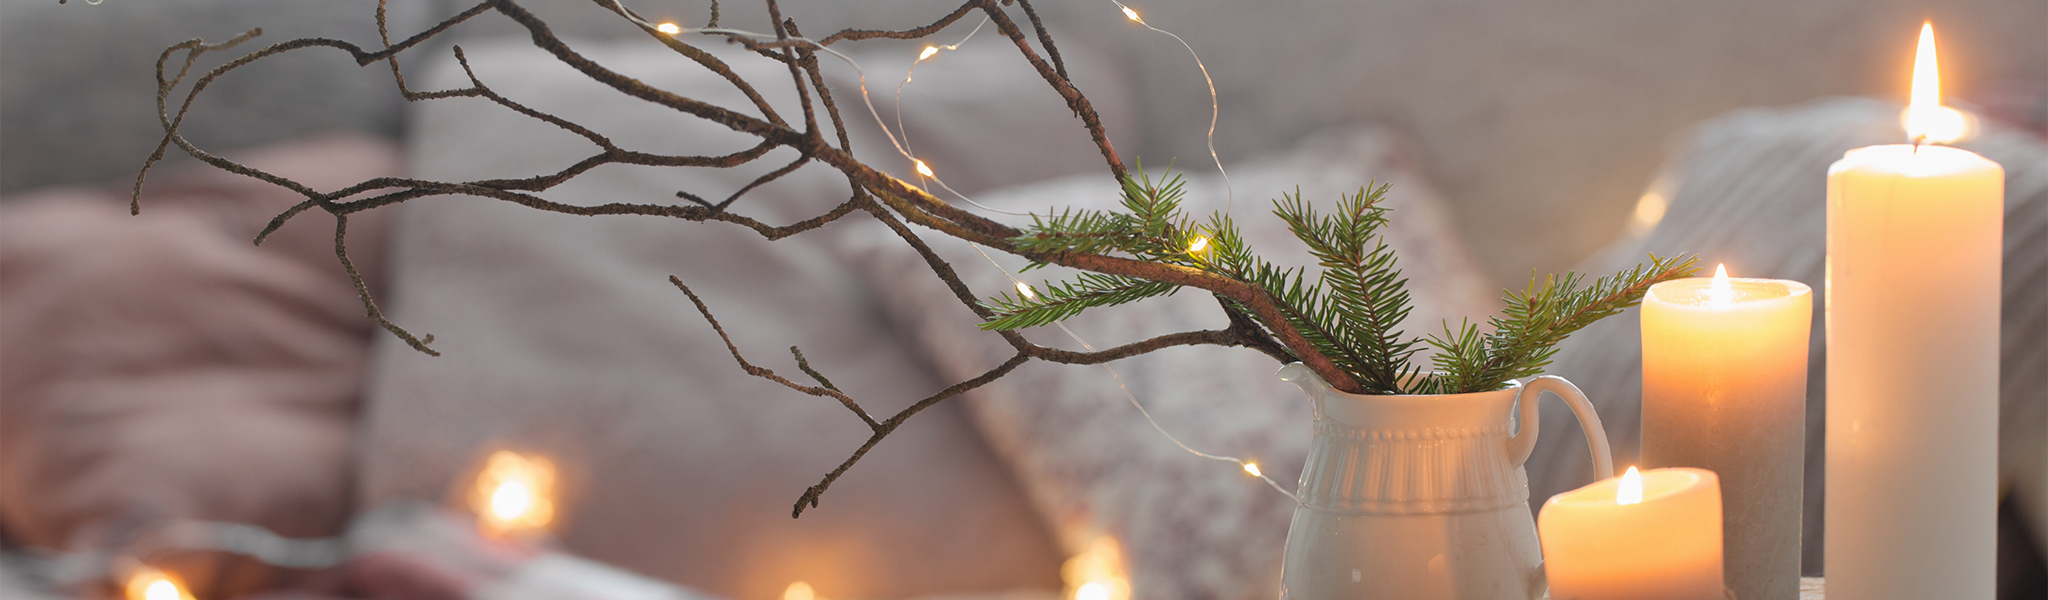 winter decor featuring multi sized candles and a white vase with lit up small branches